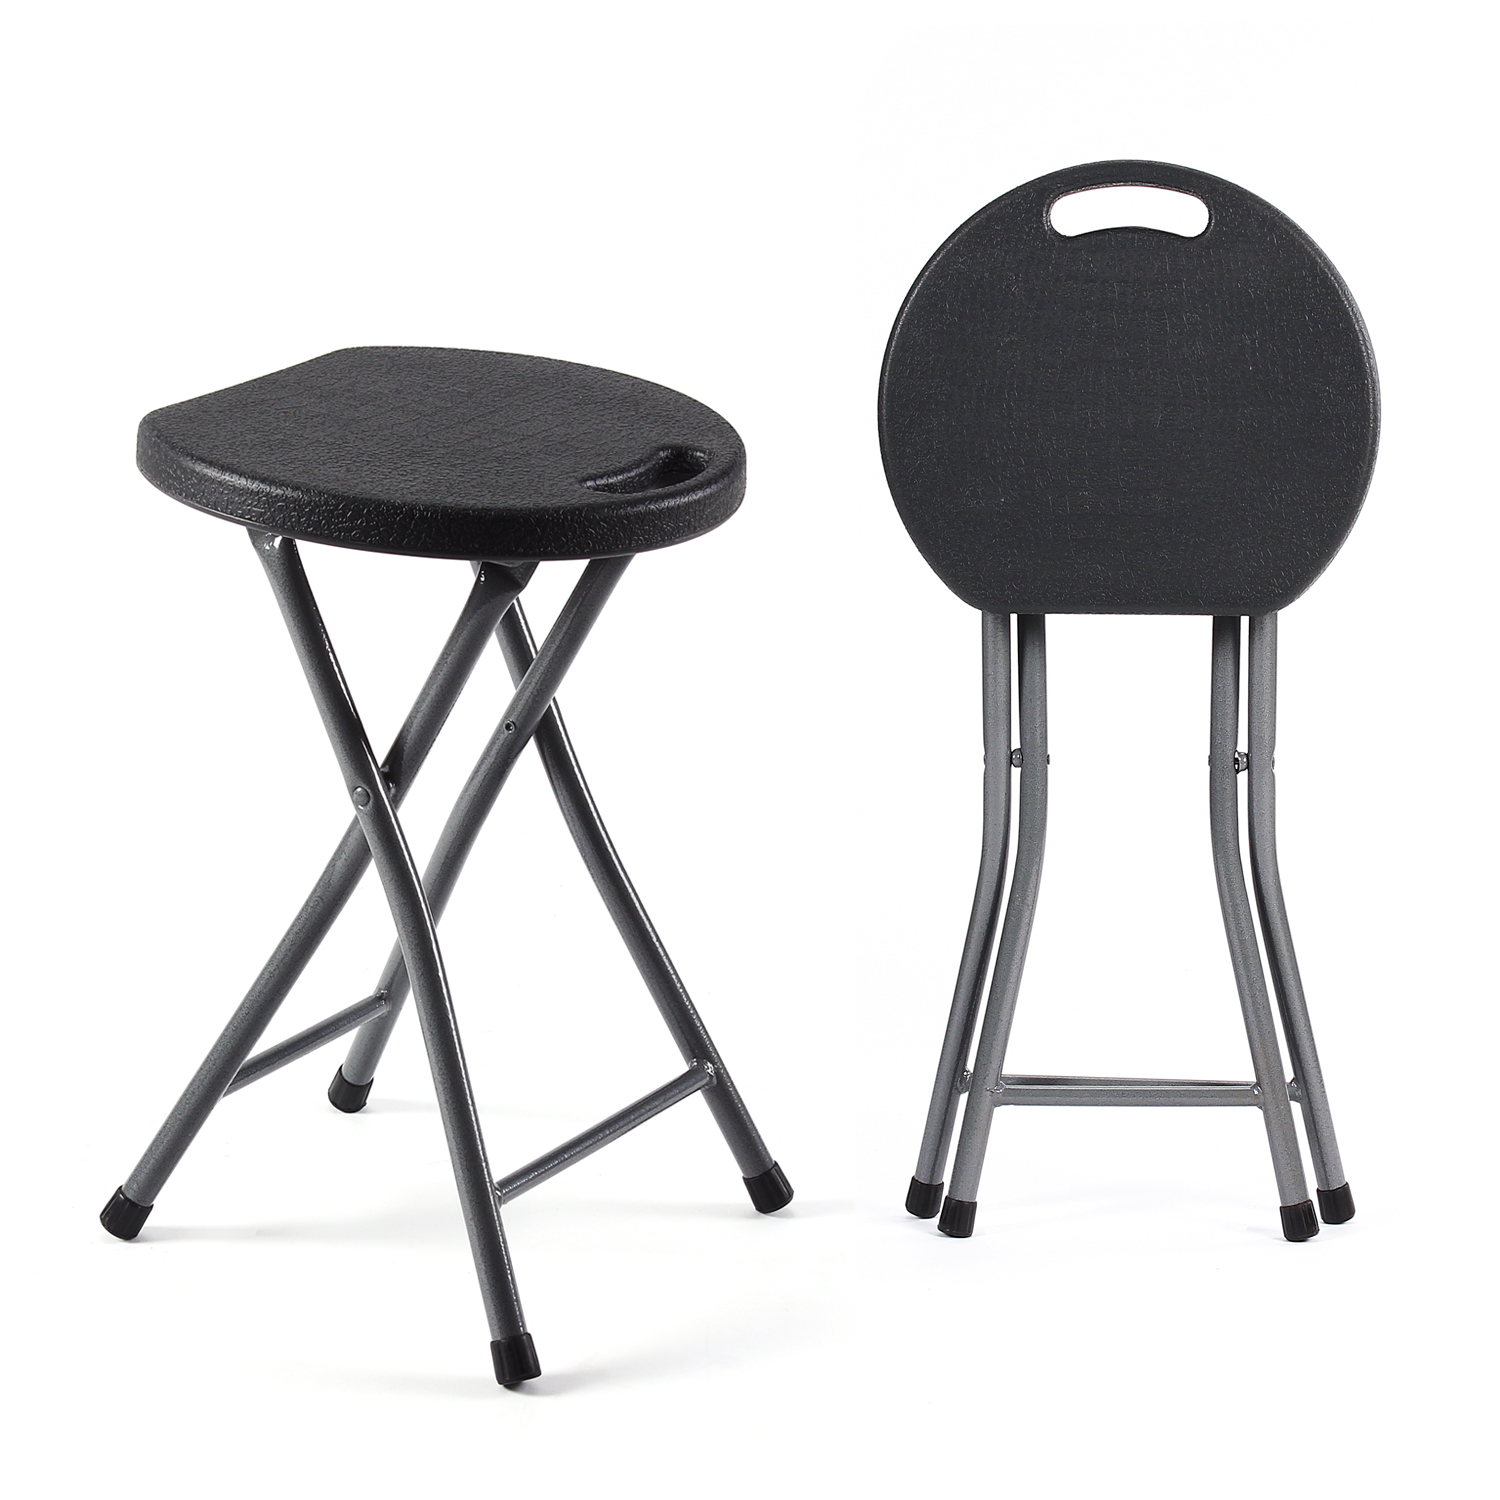 TAVR Metal and Plastic Folding Stool ,Folding Chair ,Outside Chair  2-Pack (Black)